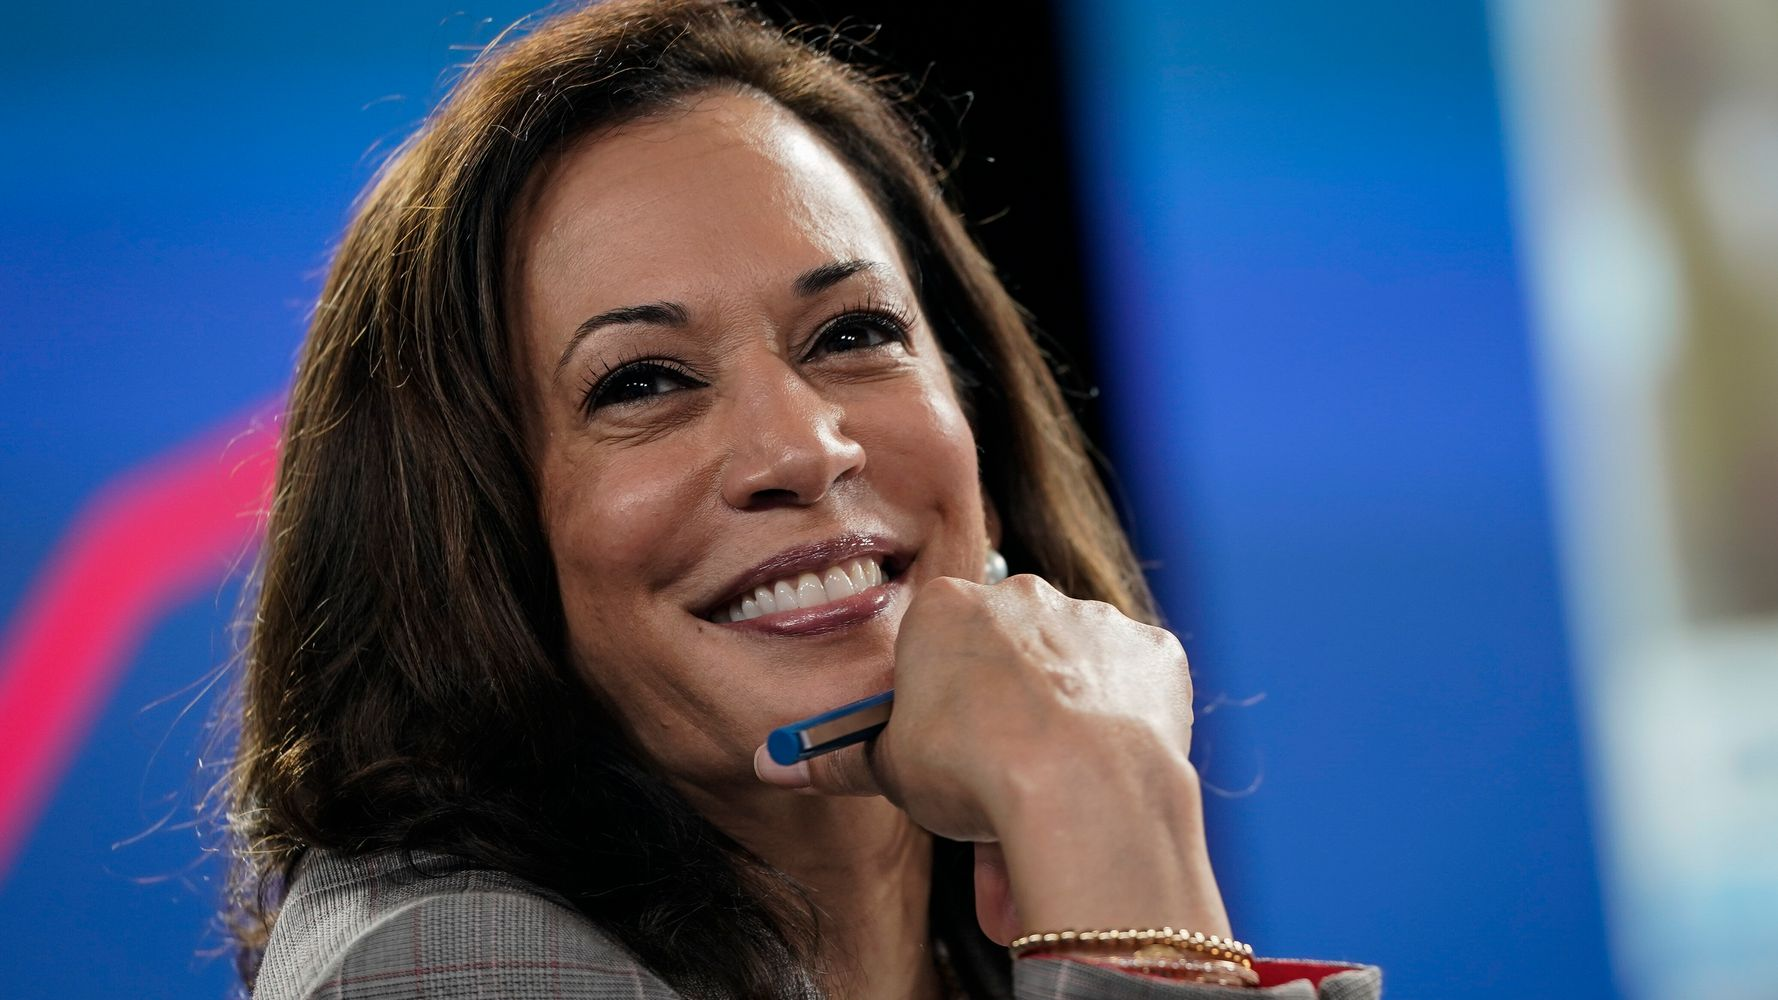 Thoughtful Quotes About Being A Stepparent From Kamala Harris